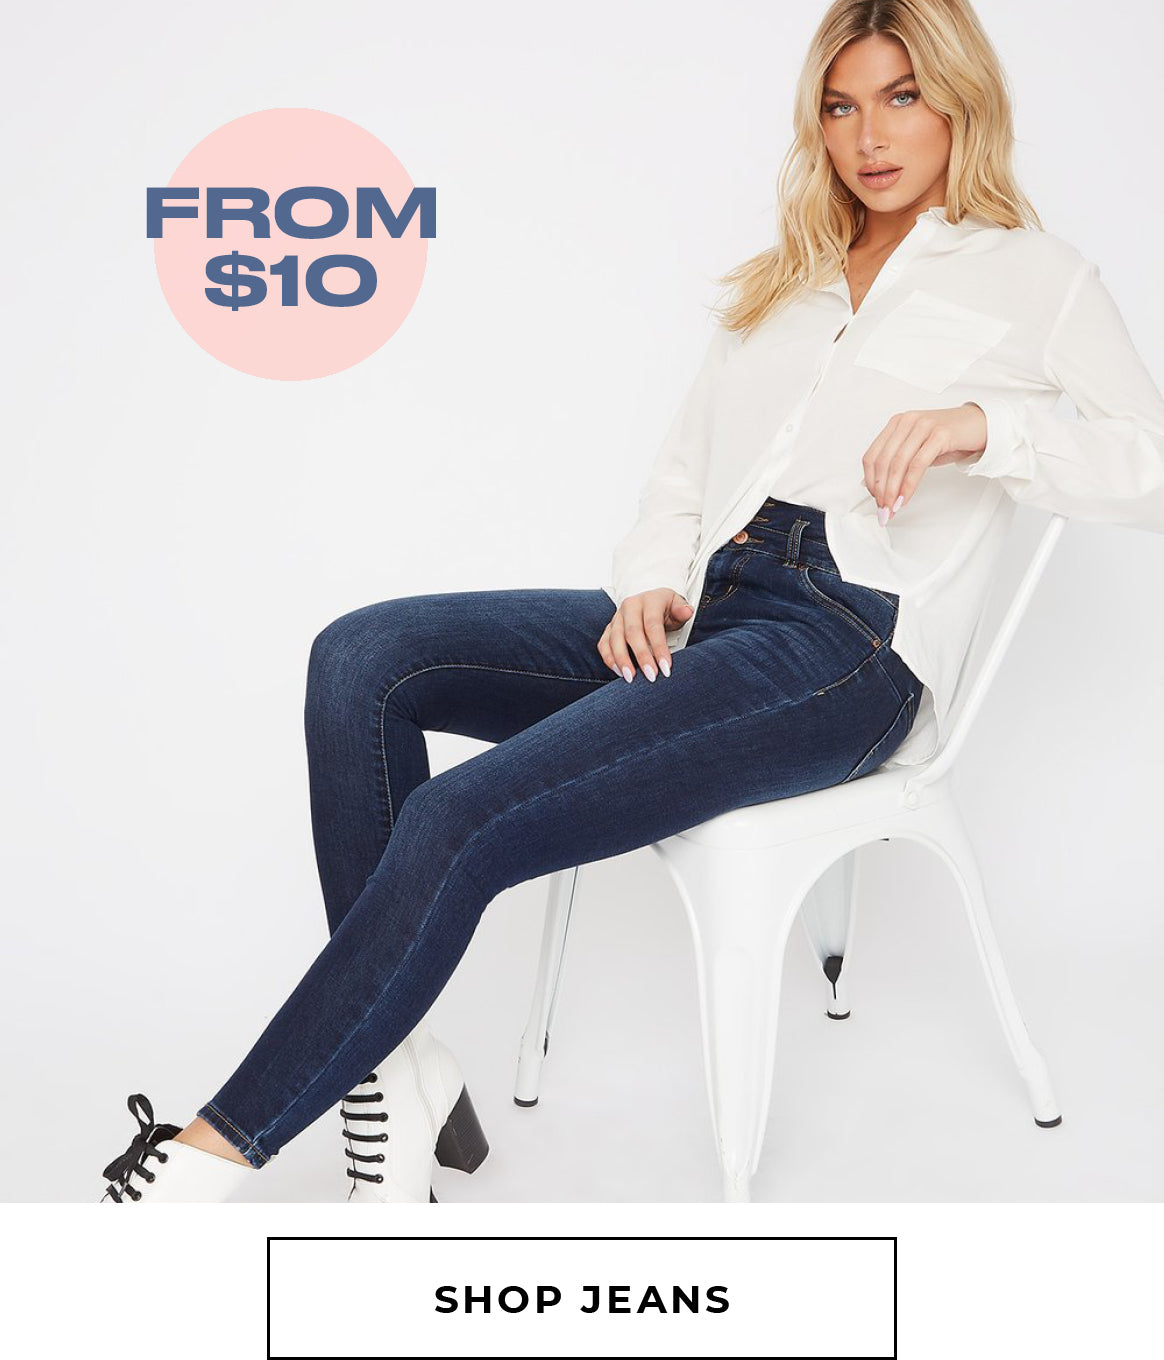 Charlotte Russe | From $10 - Shop Jeans